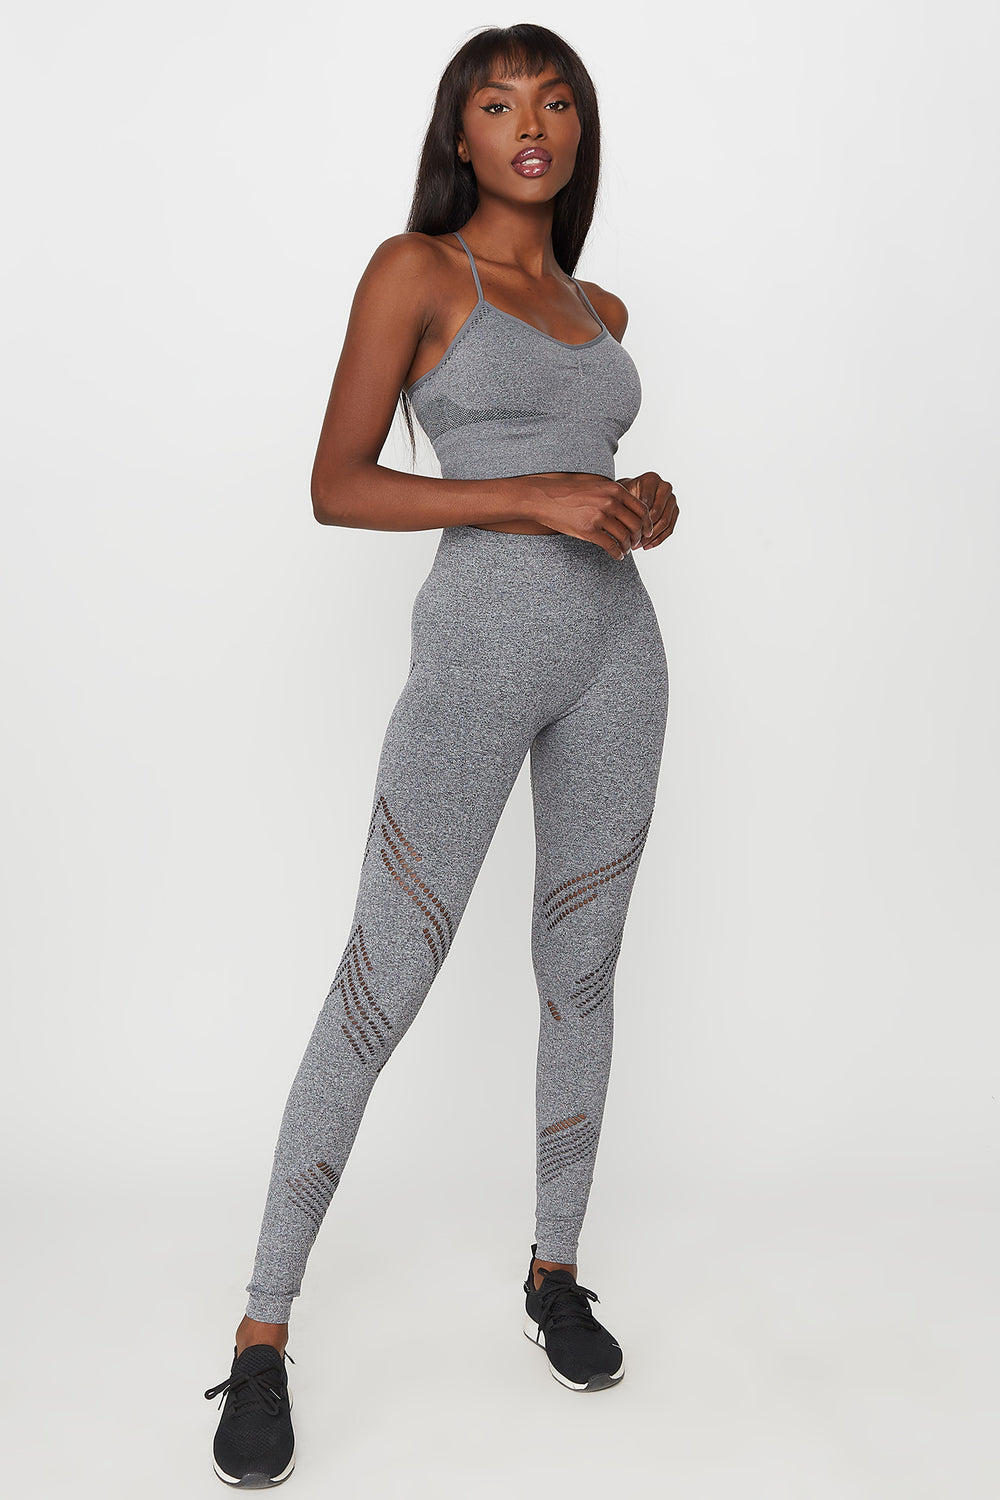 High-Rise Mesh Cut Out Seamless Active Legging Heather Grey